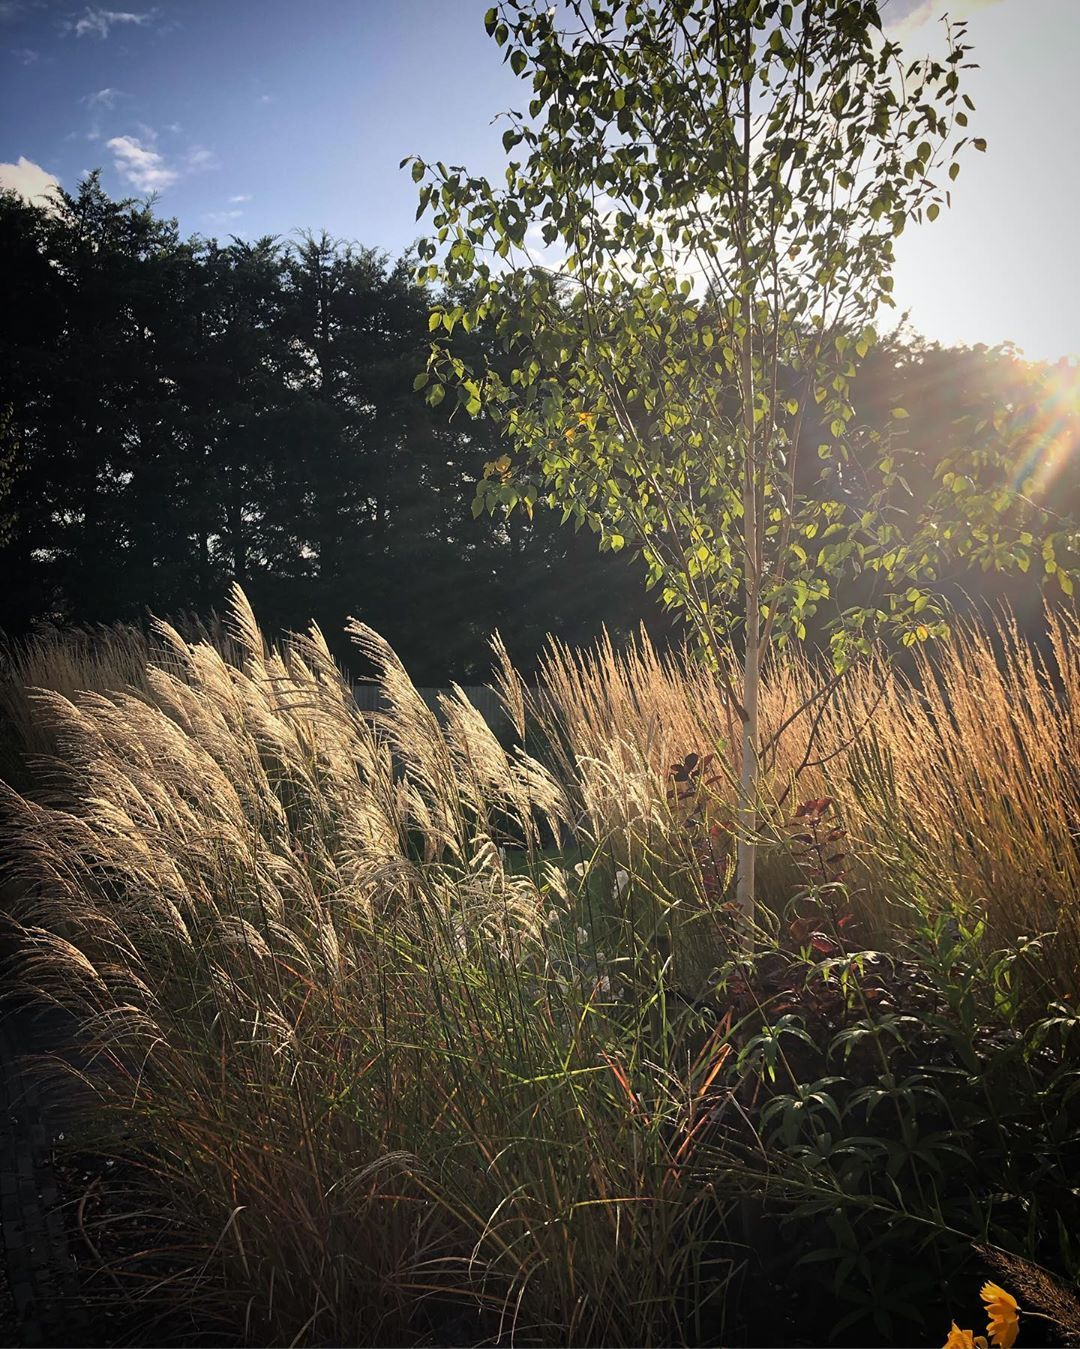 Miscanthus And Calamagrostis In The Late Afternoon Sun Caught